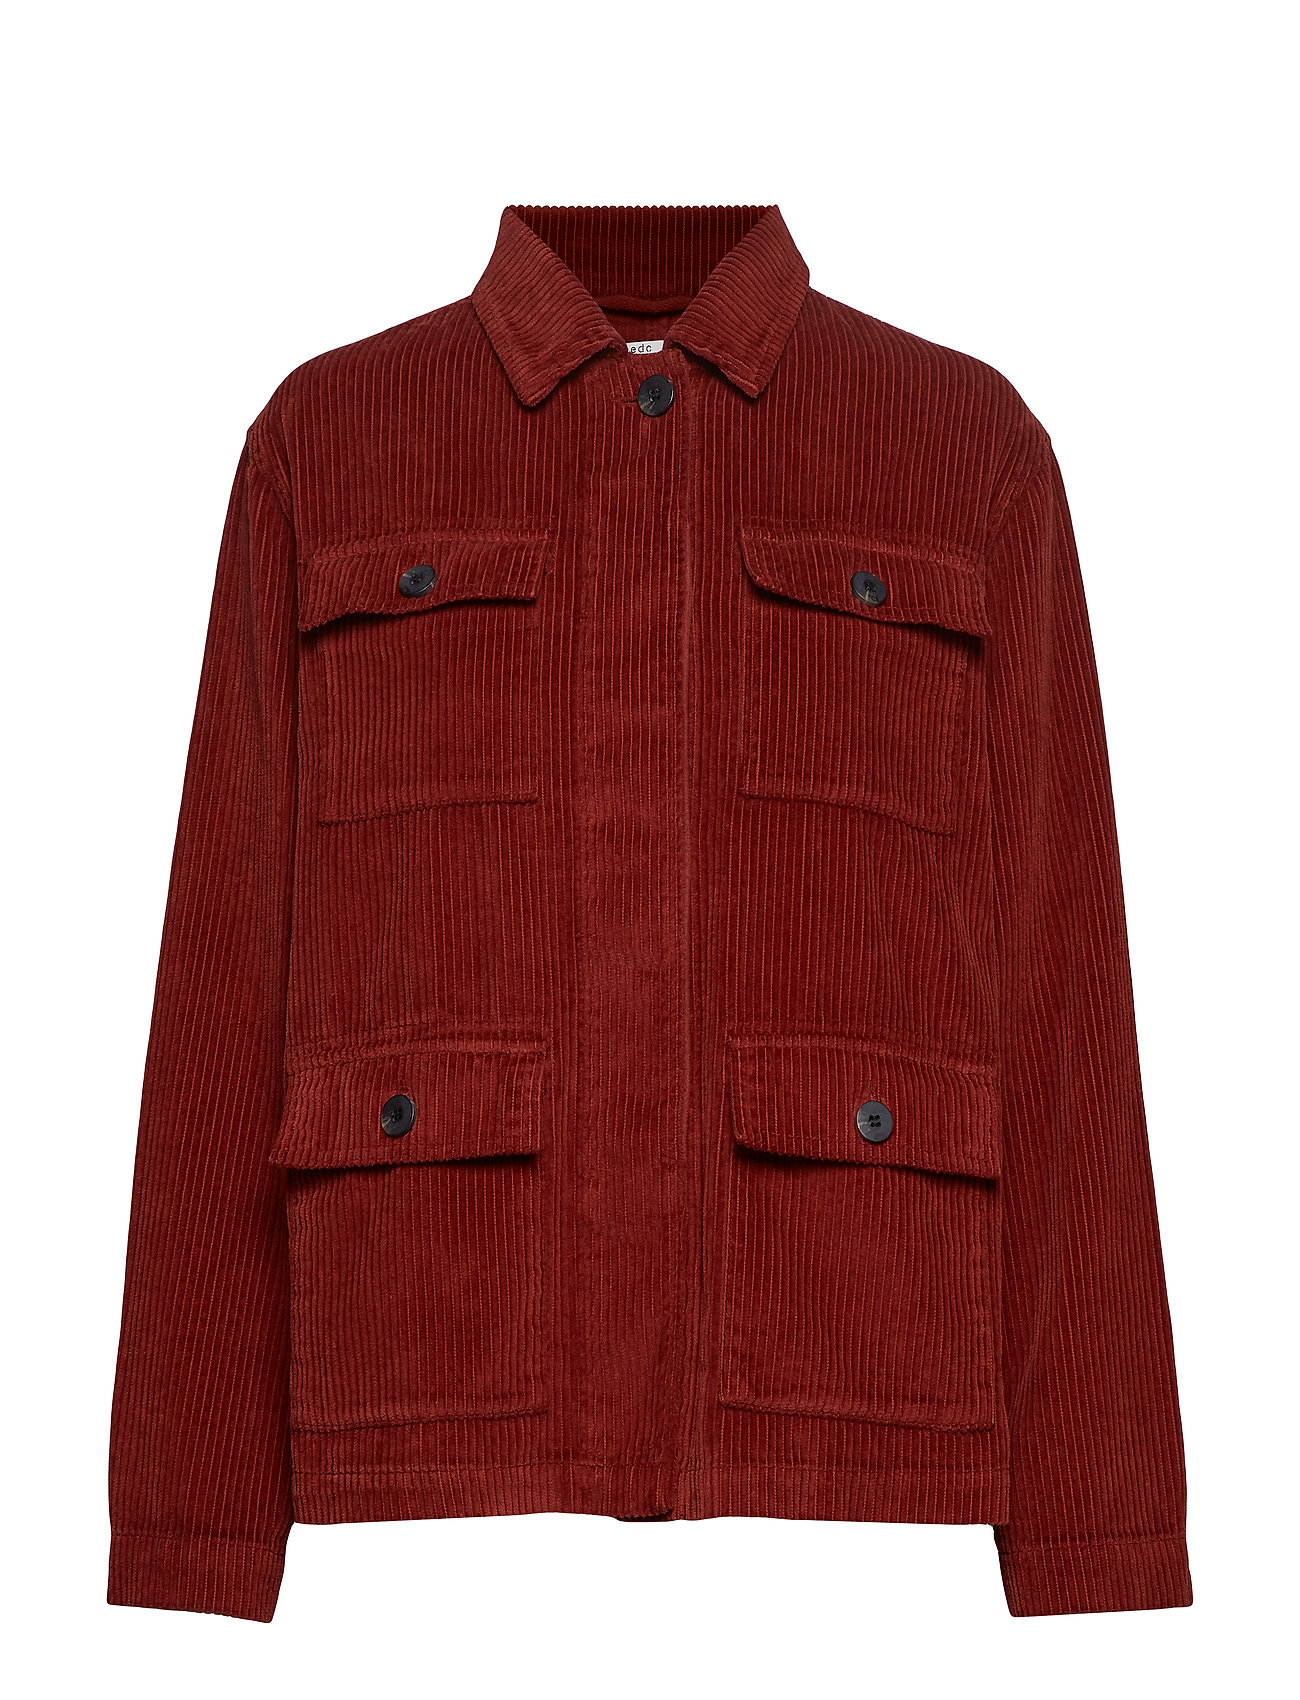 EDC by Esprit Jackets indoor woven - TERRACOTTA 5